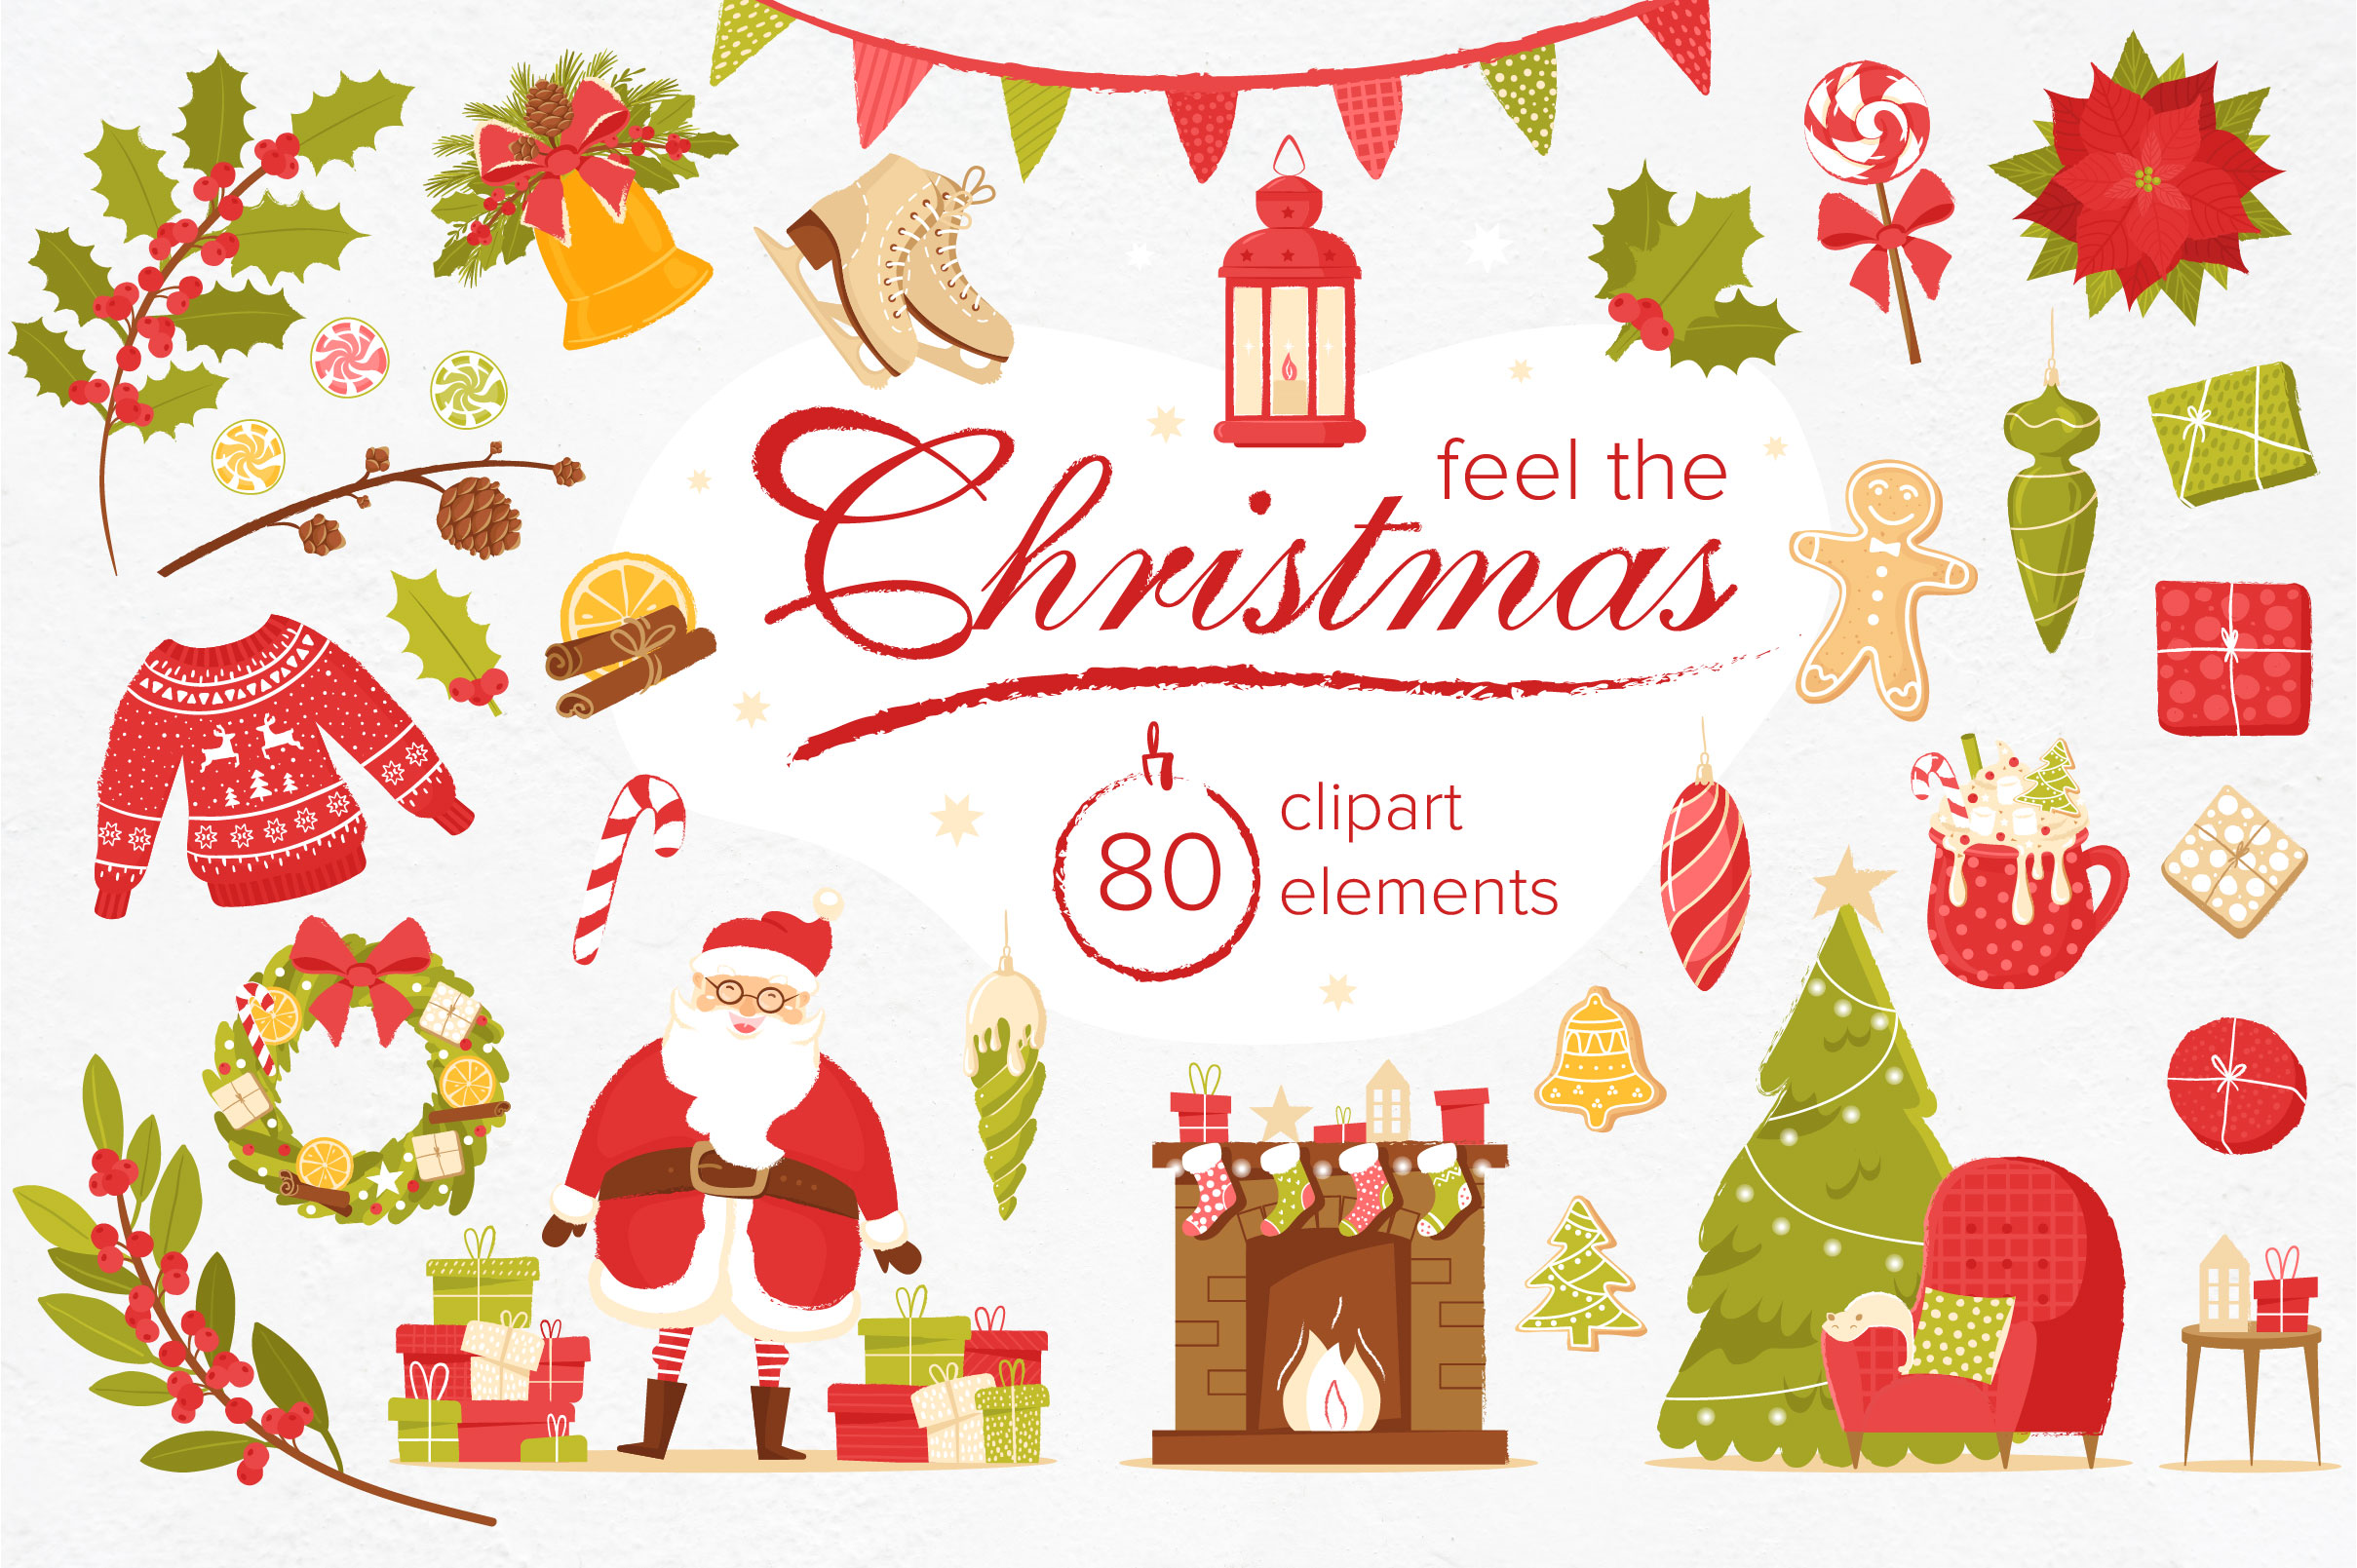 Download Free Christmas Feeling 80 Elements Graphic By Katiazhe Creative Fabrica for Cricut Explore, Silhouette and other cutting machines.